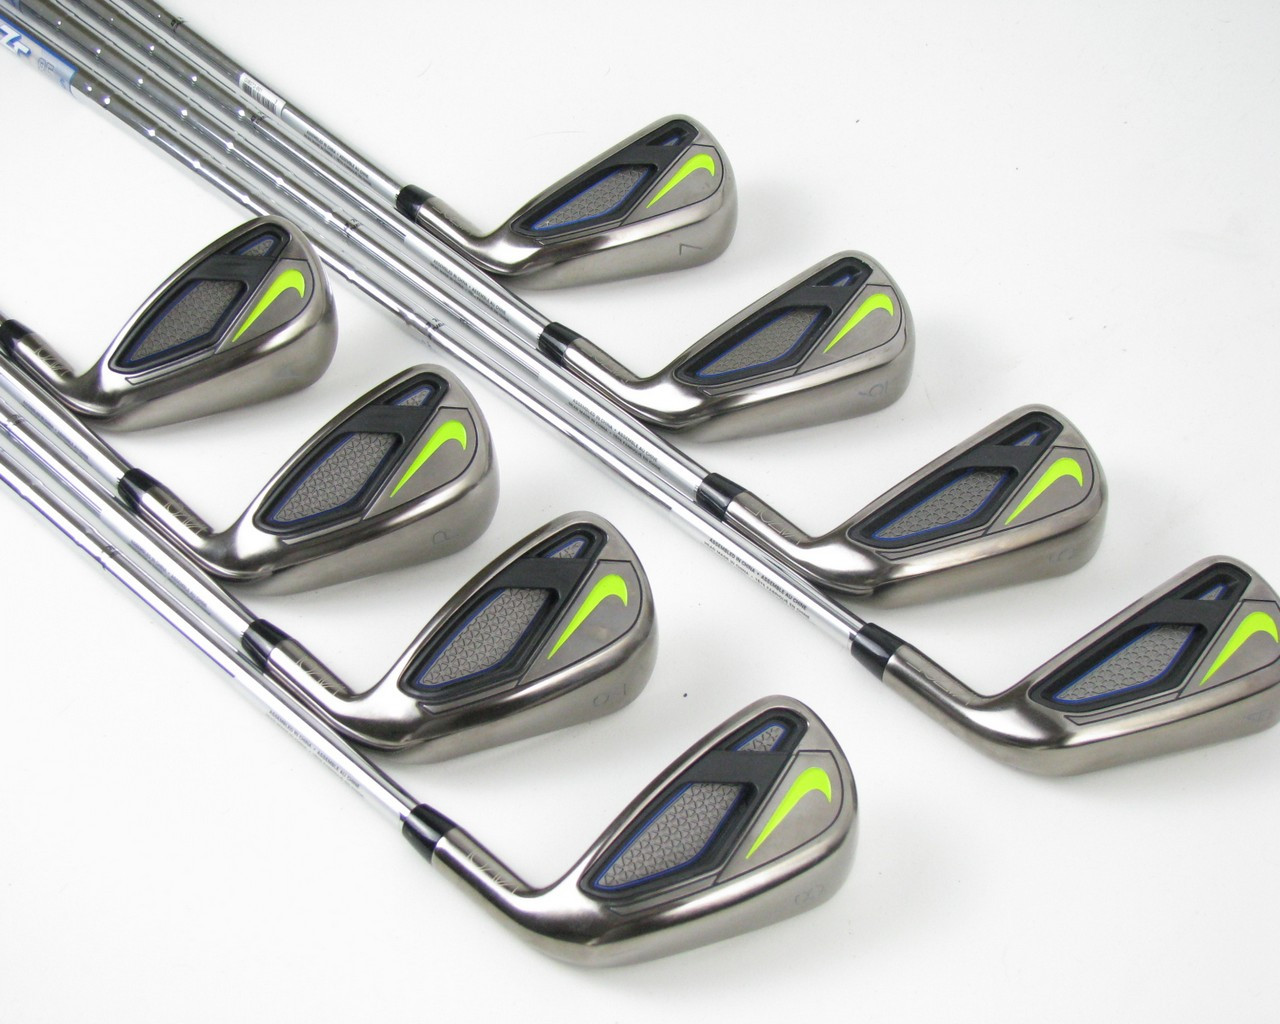 b685a829a4a12 MINT Nike Vapor Fly iron set 4-PW+AW w  Steel Zip Tip 85 Stiff ...